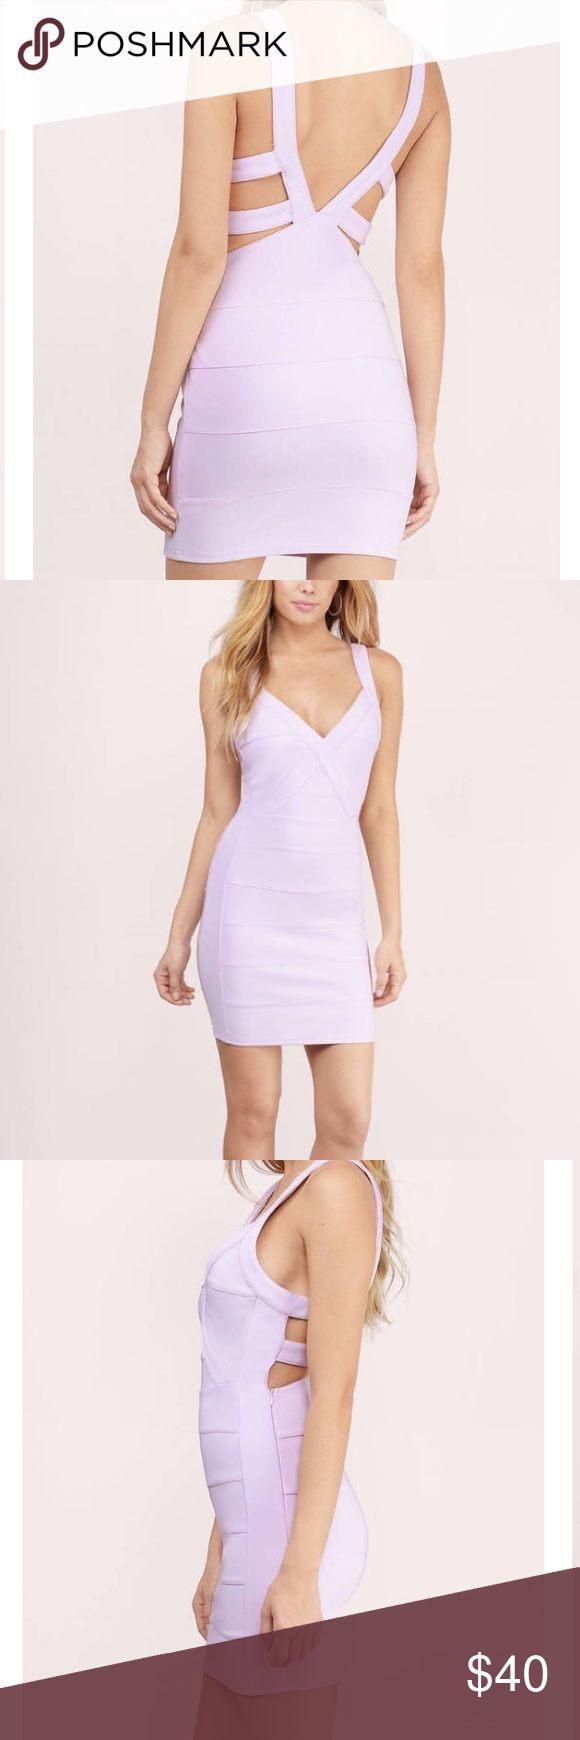 Tobi lavender bandage bodycon dress Tobi lavender bandage bodycon dress. Size small. Love this dress! Too large in the bust for me :( sadly NWT Tobi Dresses